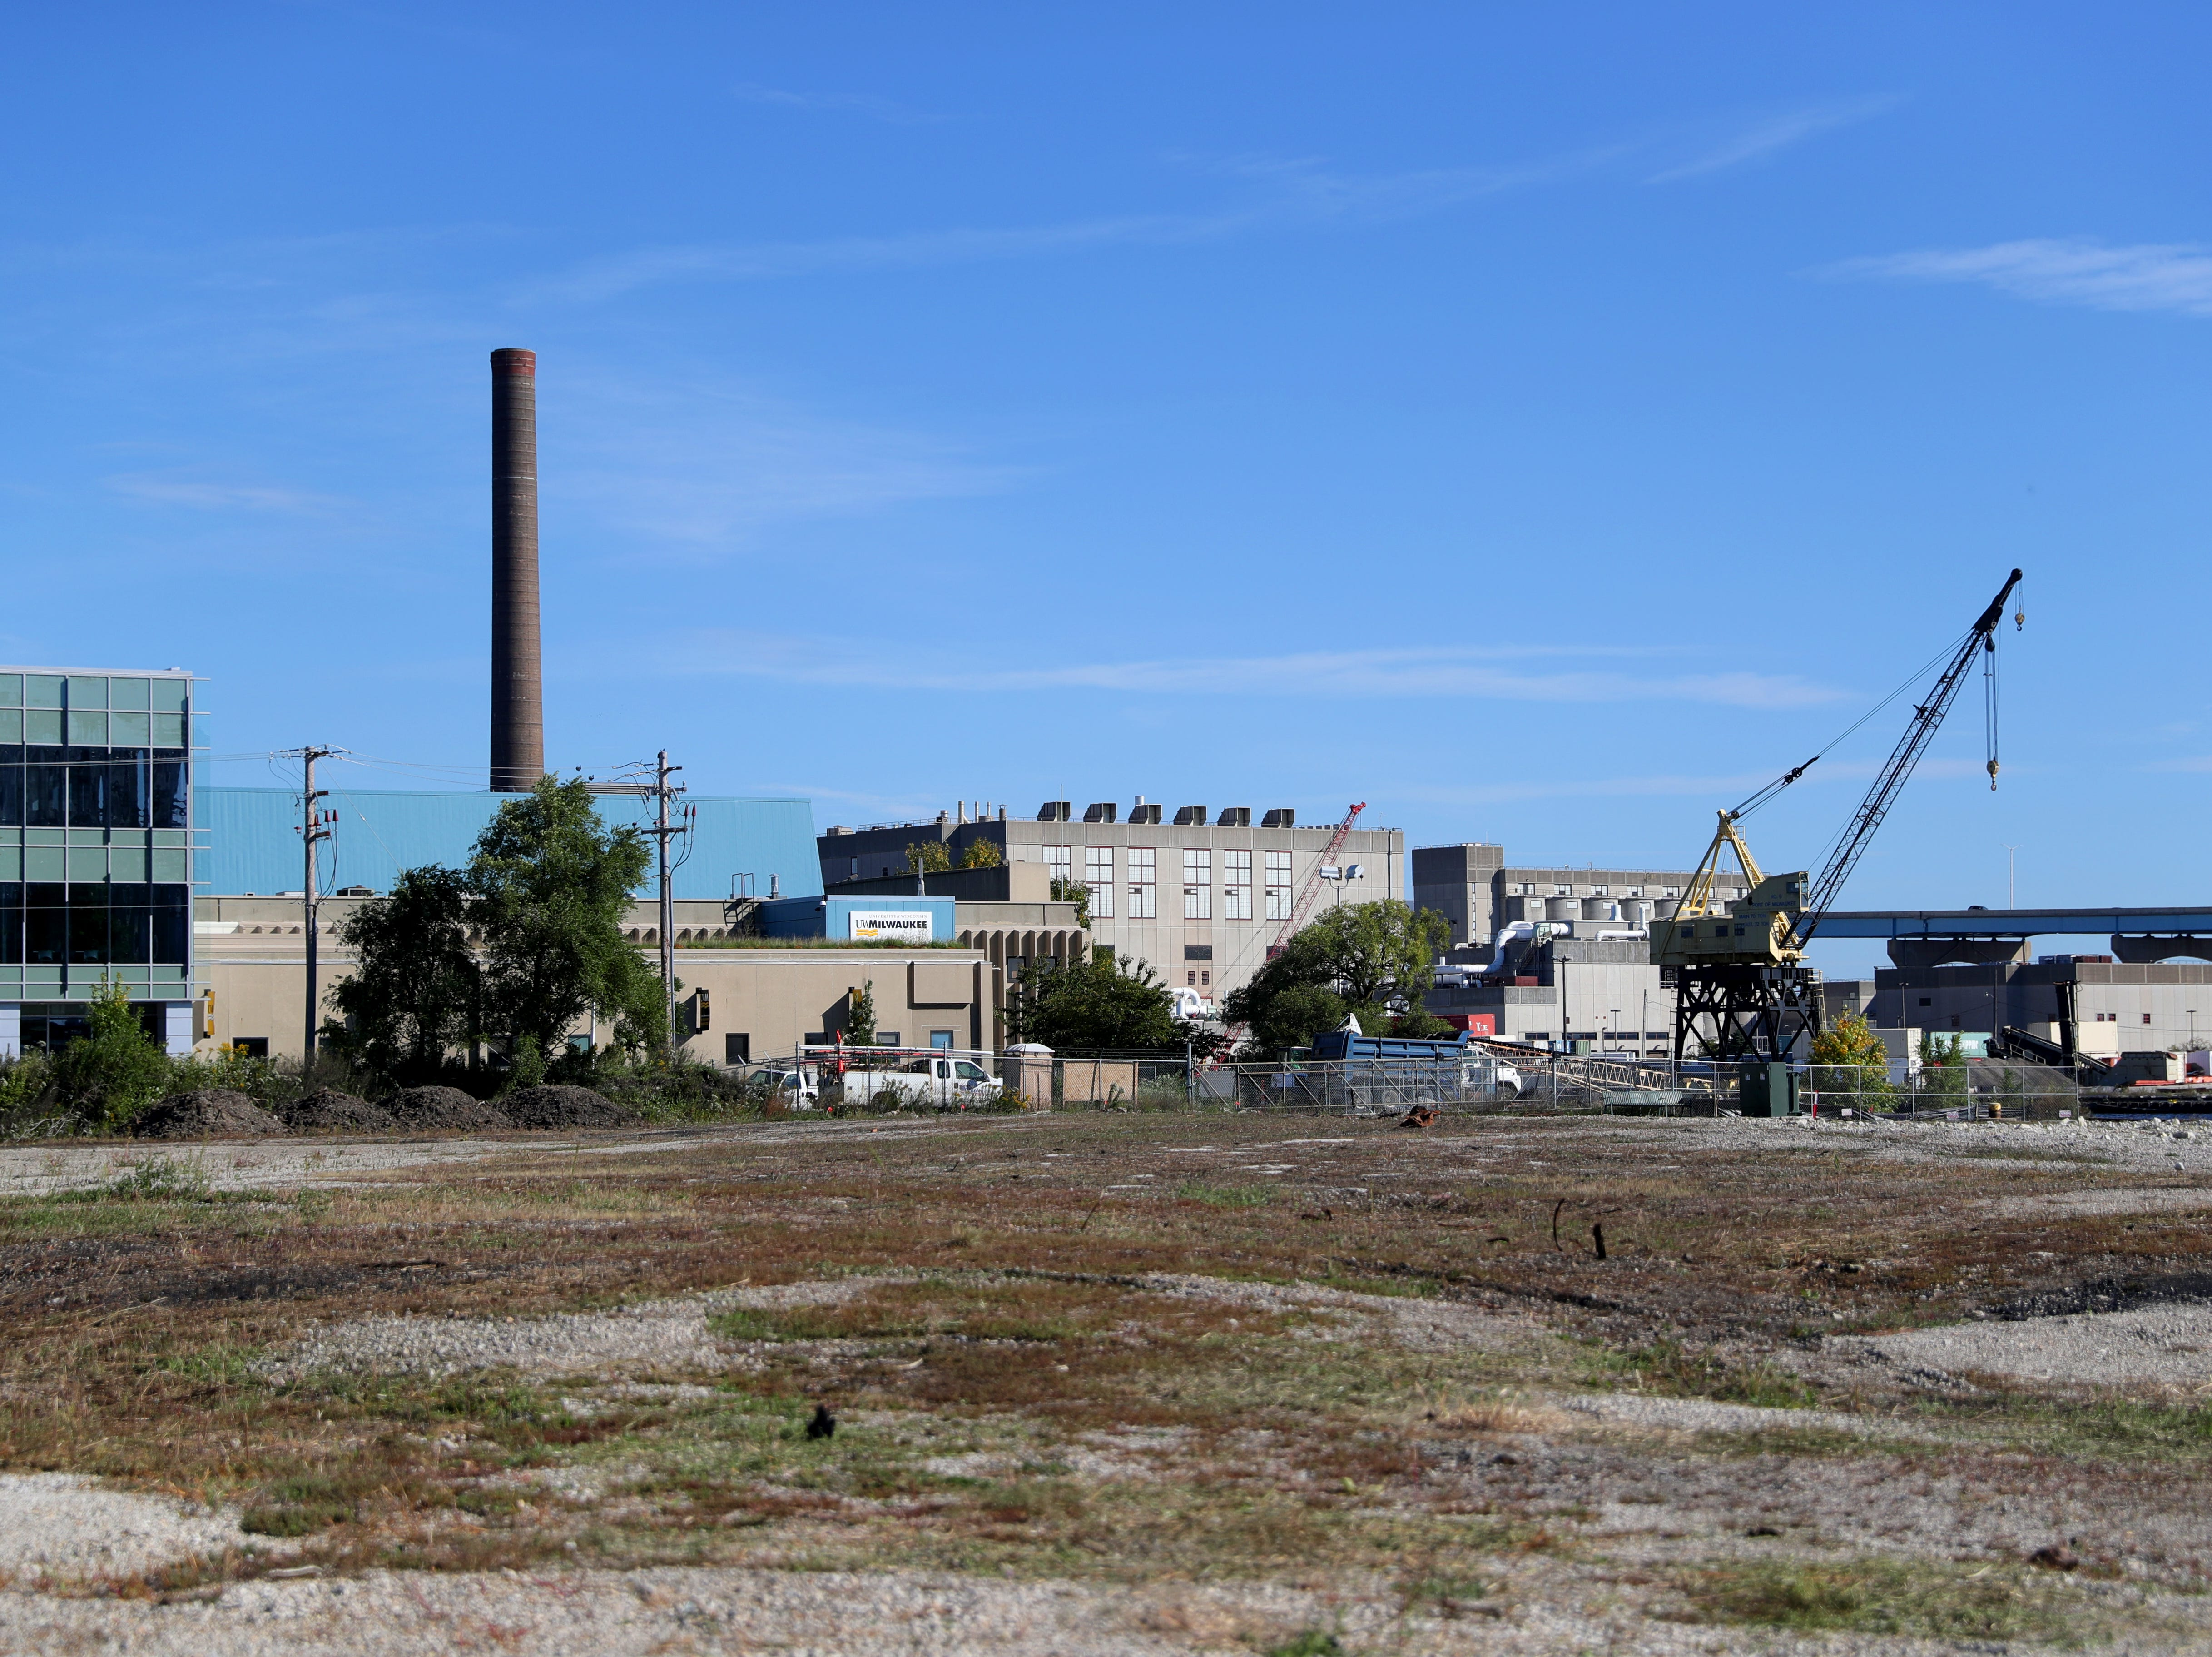 The area of land in Milwaukee's Harbor District, looking to the northeast, where Komatsu Mining Corp.'s new development will be.  The proposed new office, manufacturing and training operations are expected to eventually total around 1,000 jobs, including 600 local employees who will move there.